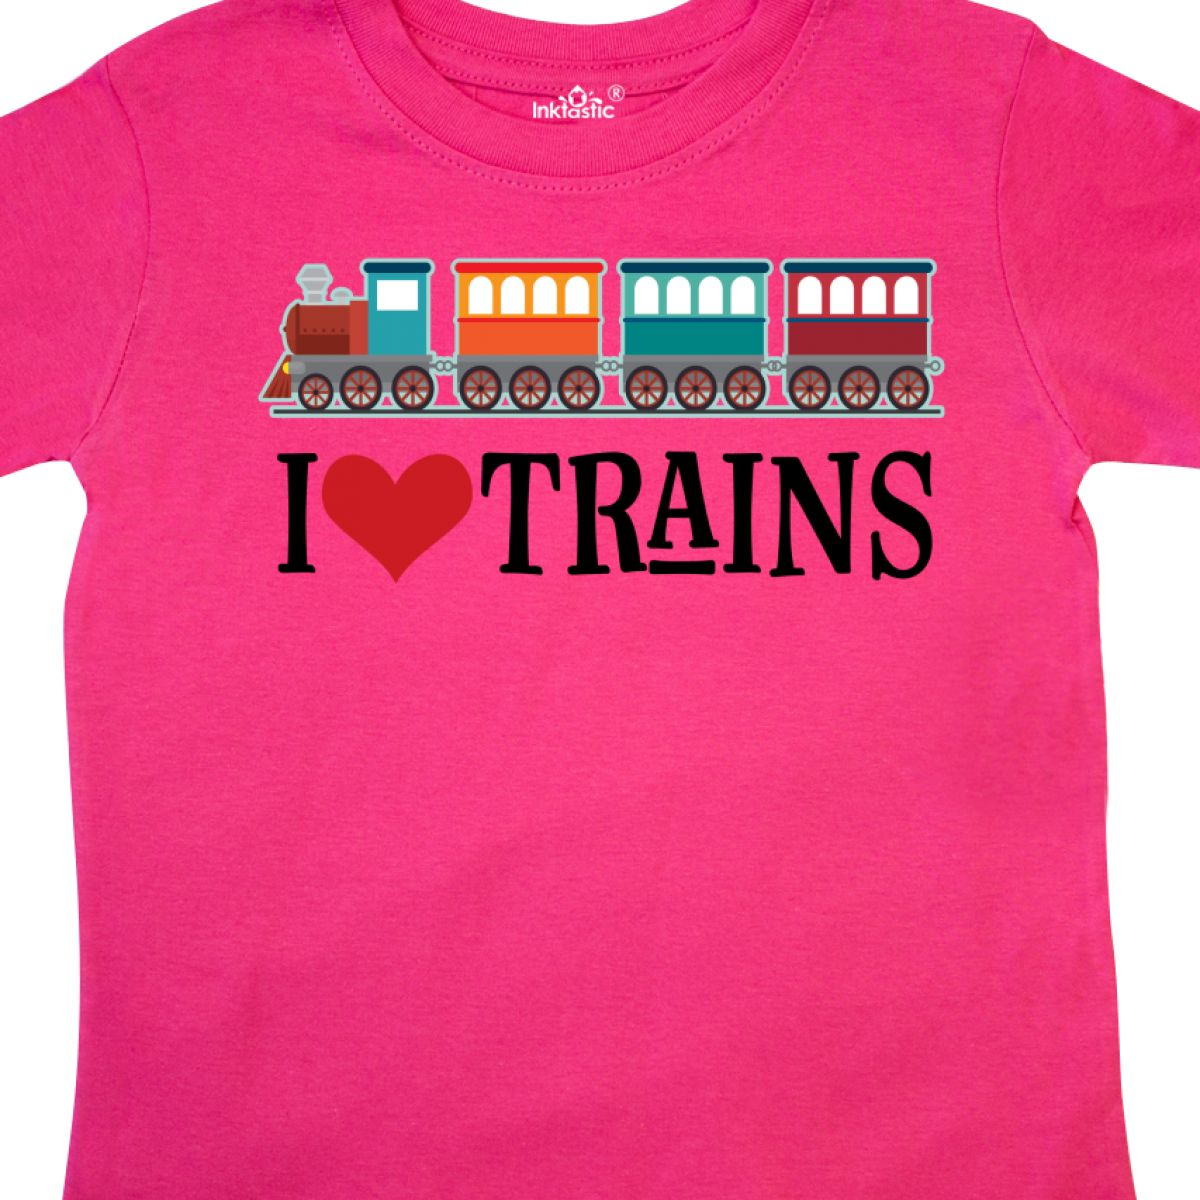 Inktastic-I-Love-Trains-Toddler-T-Shirt-Choo-Childs-Clothing-Apparel-Railfan-Set thumbnail 16